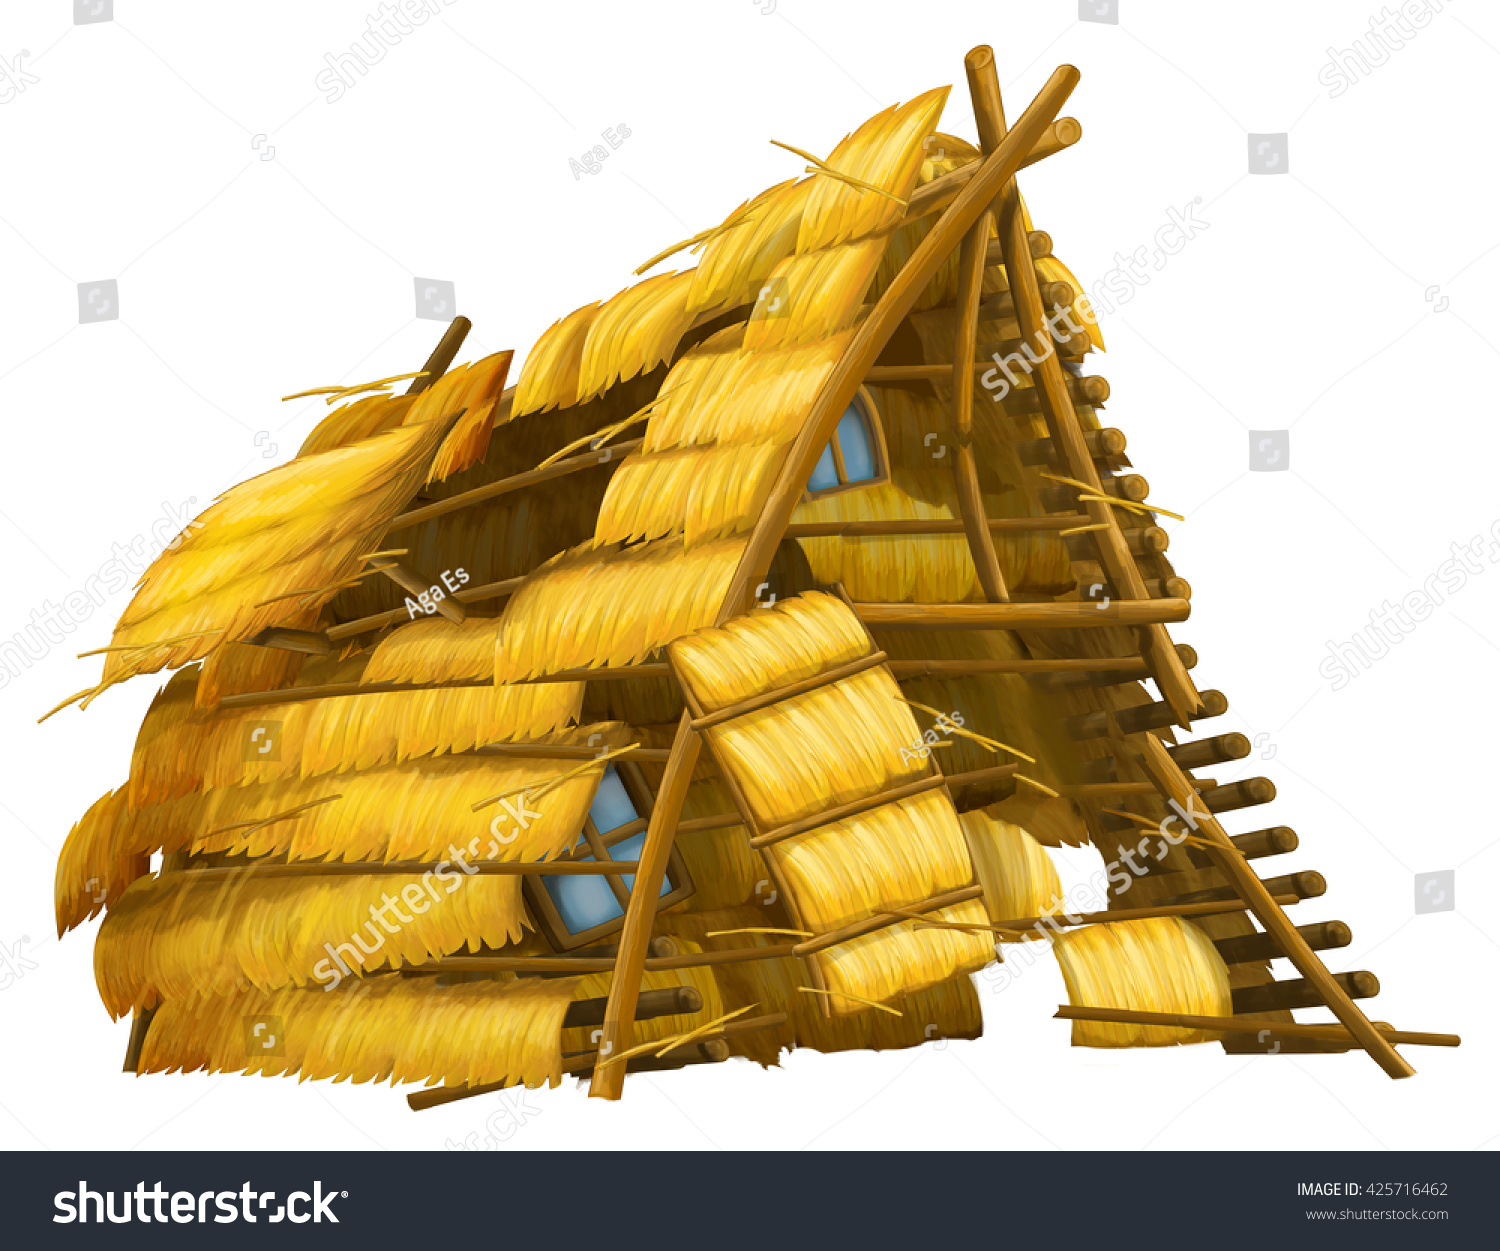 old cartoon hay house blown away stock illustration 425716462 shutterstock. Black Bedroom Furniture Sets. Home Design Ideas